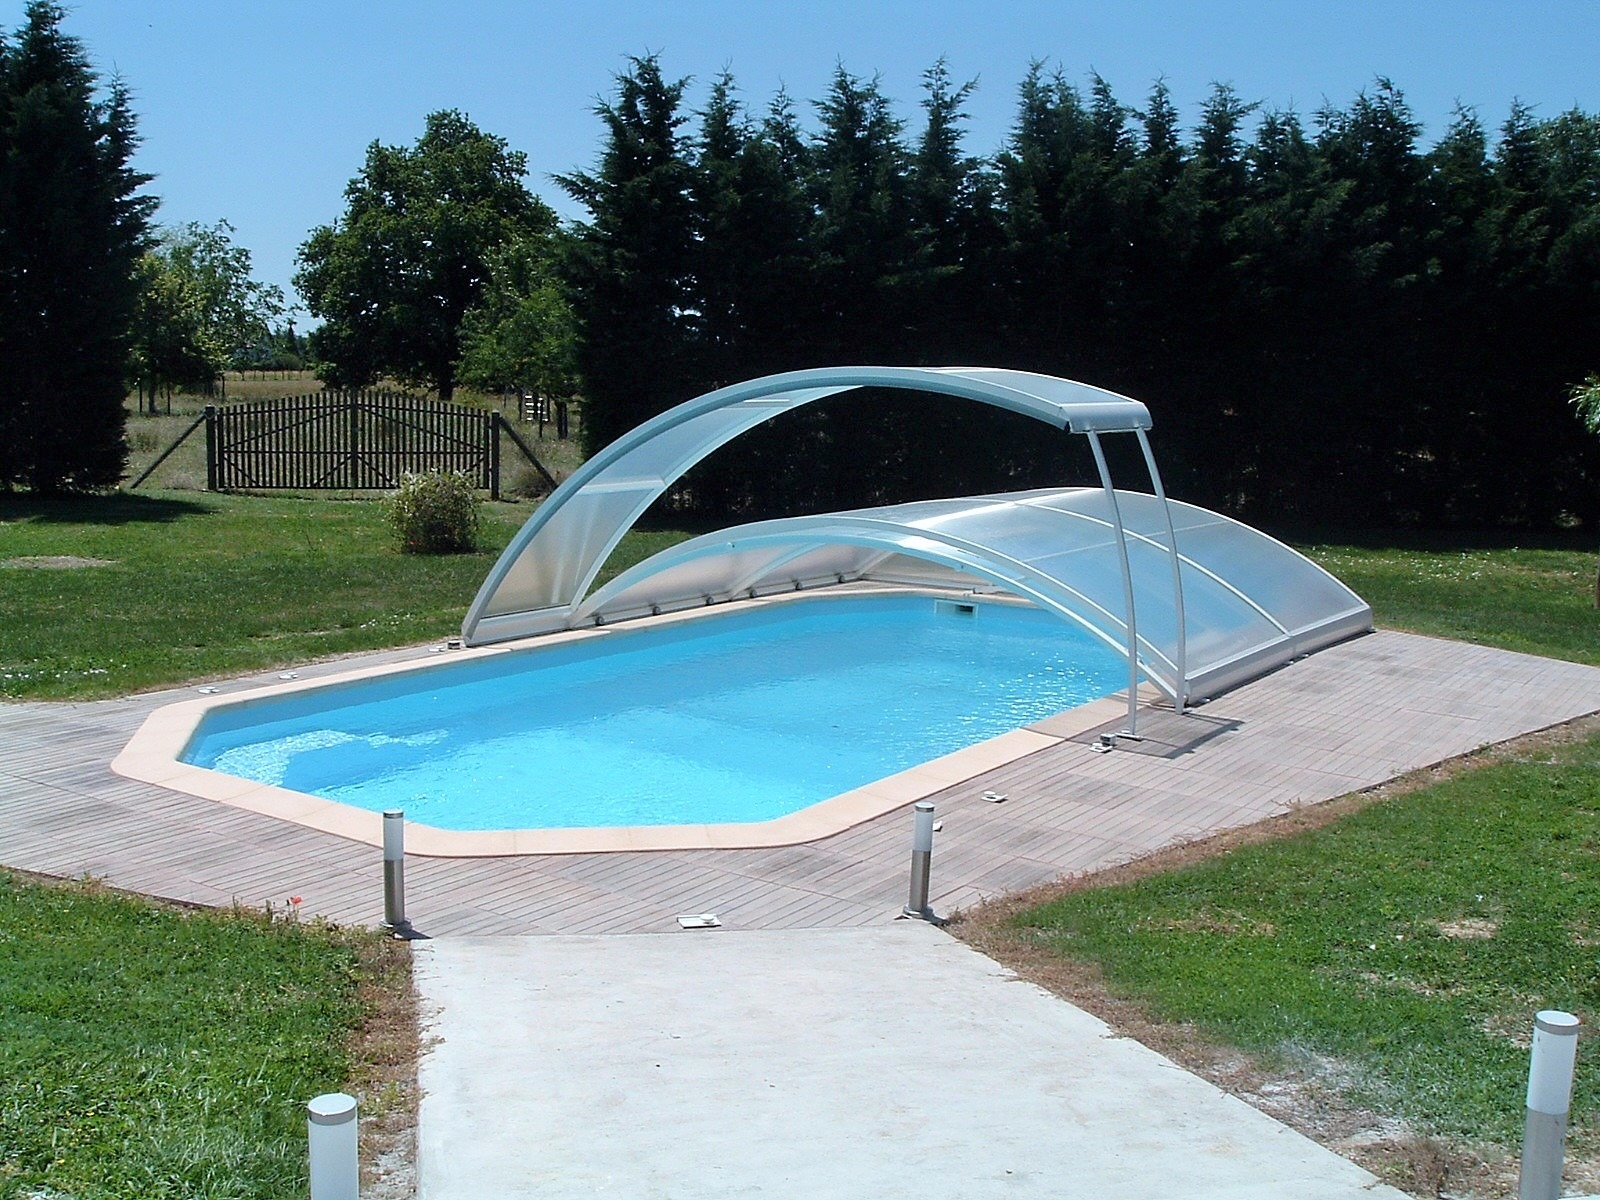 Lons le saunier jura 39000 8km vends belle villa 150m env for Piscine aquarel lons